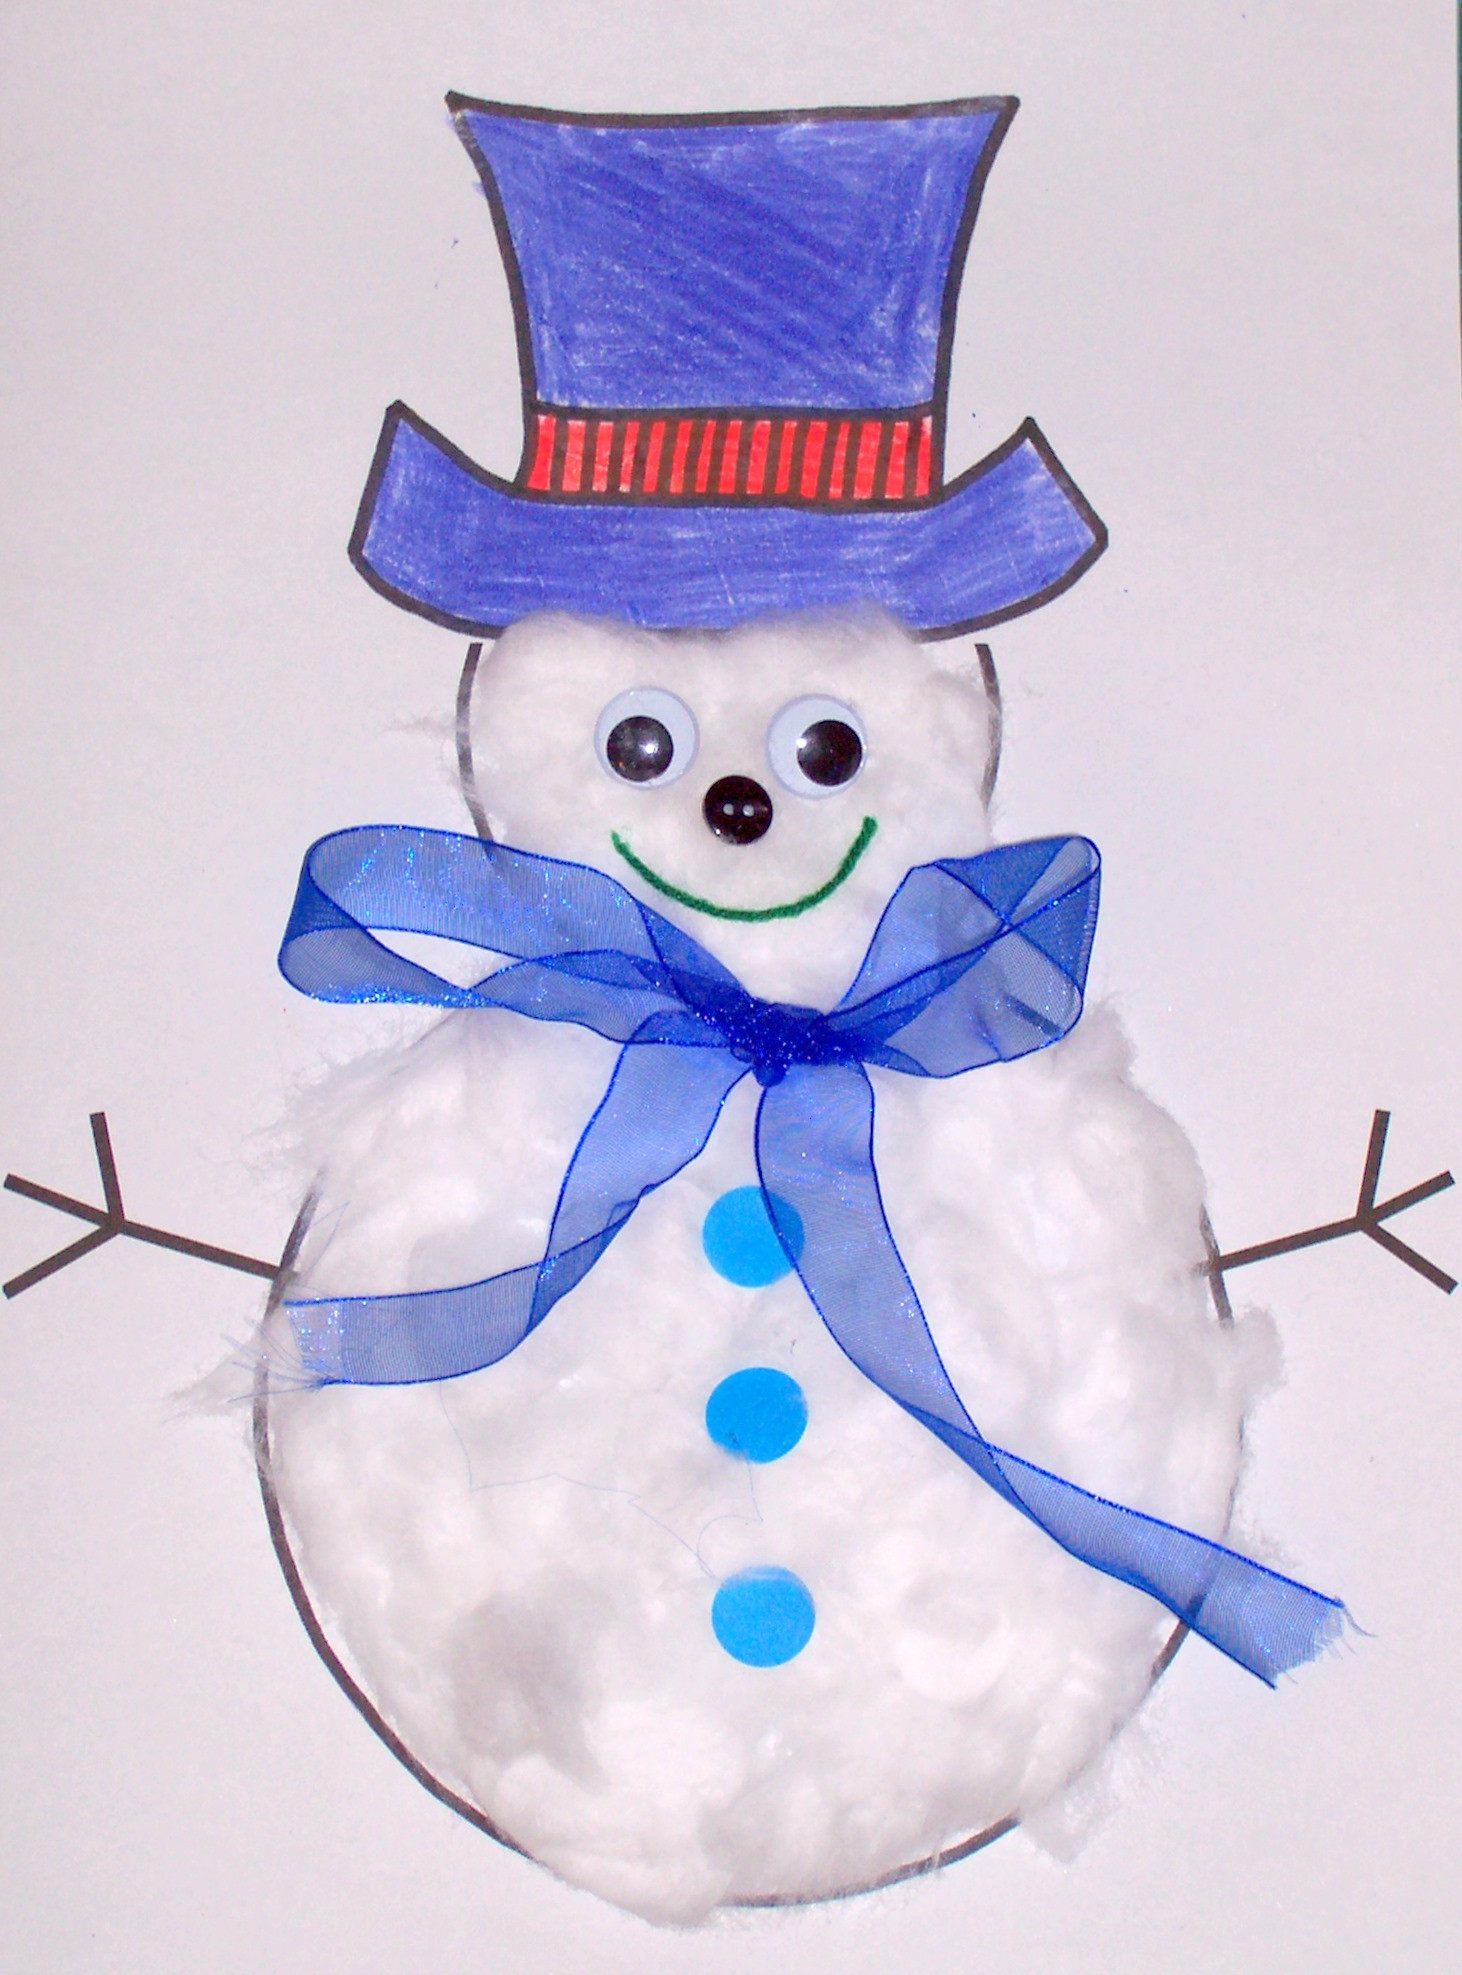 Christmas Craft Ideas For Kids  15 Fun and Easy Christmas Craft Ideas for Kids – Miss Lassy